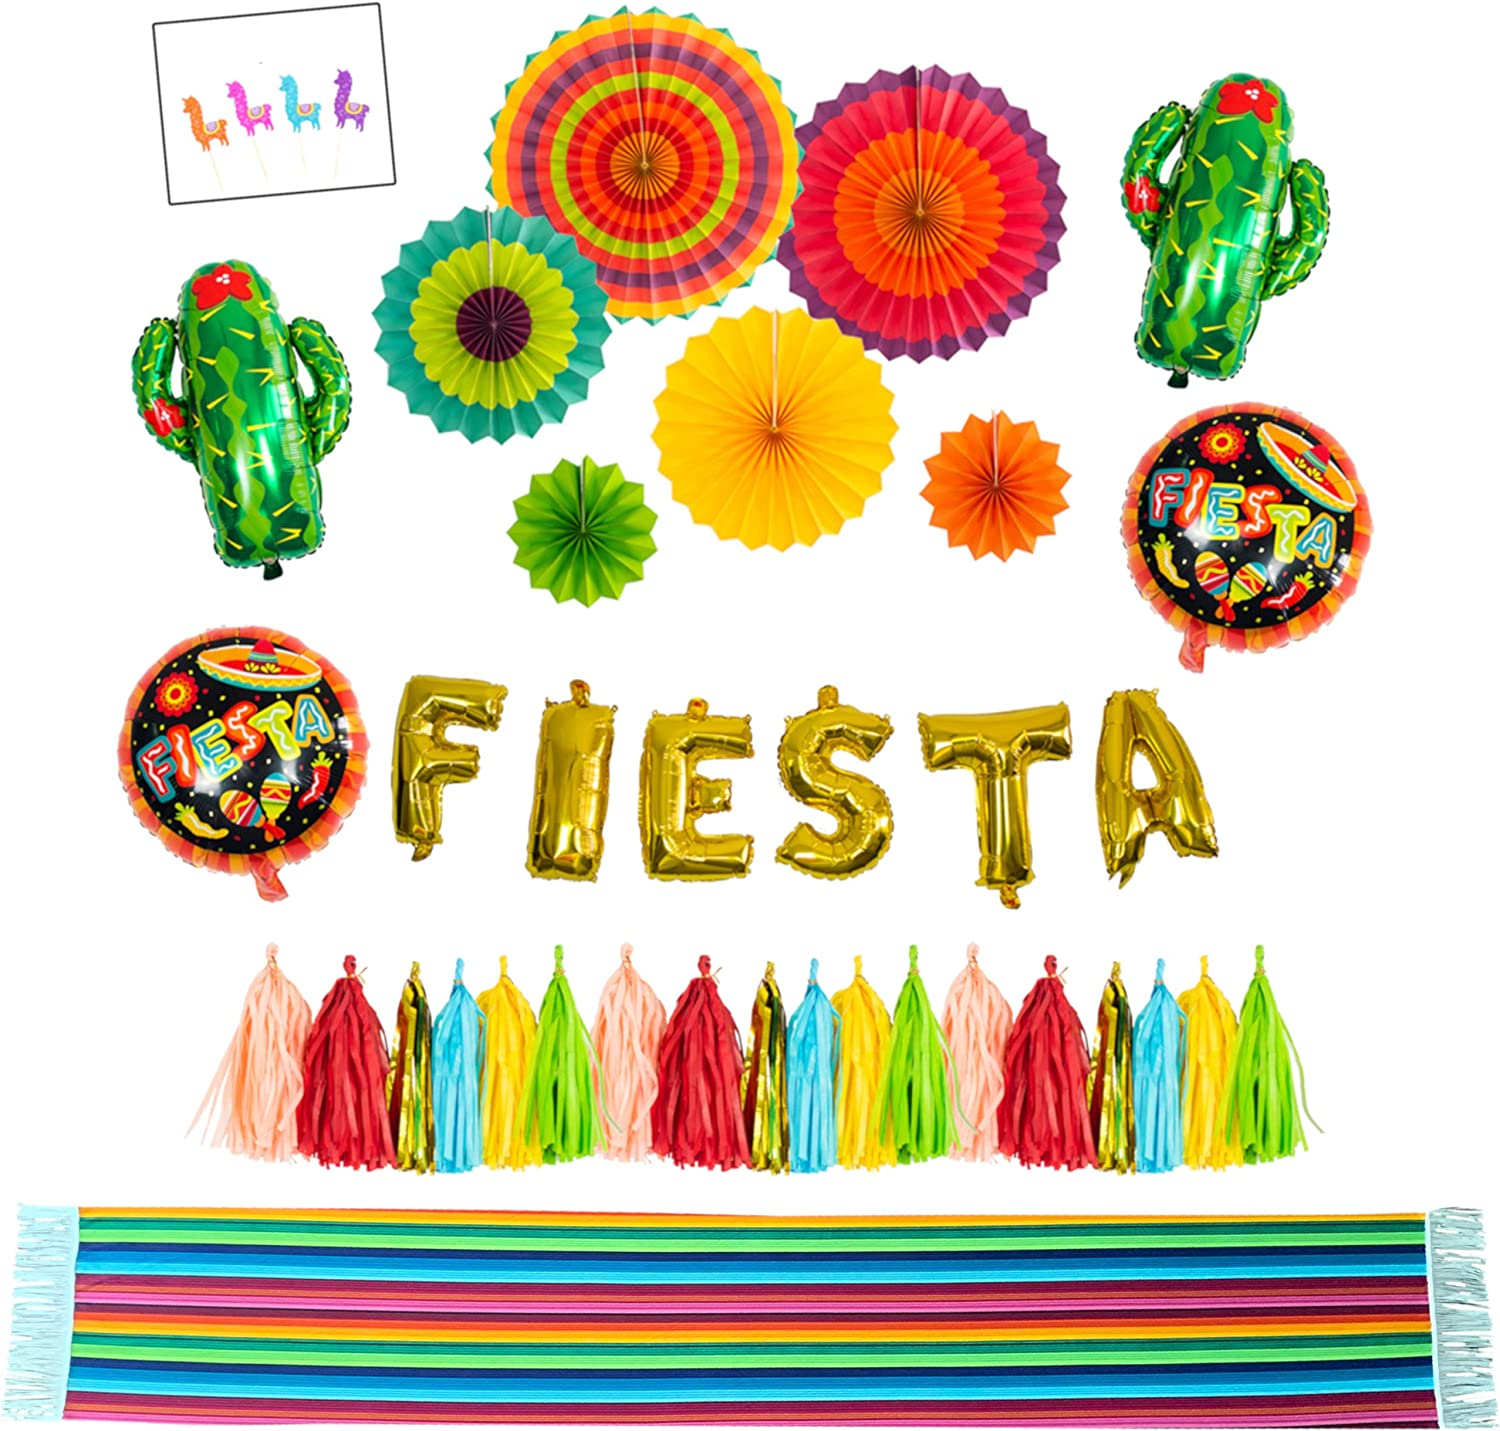 FIESTA Decoration Supply kit With Table Runner- Cactus decor foil Balloons, Gold Fiesta balloon banner, Fiesta helium balloons, Coco paper tassel garland, Mexican party style paper fans; Table runner